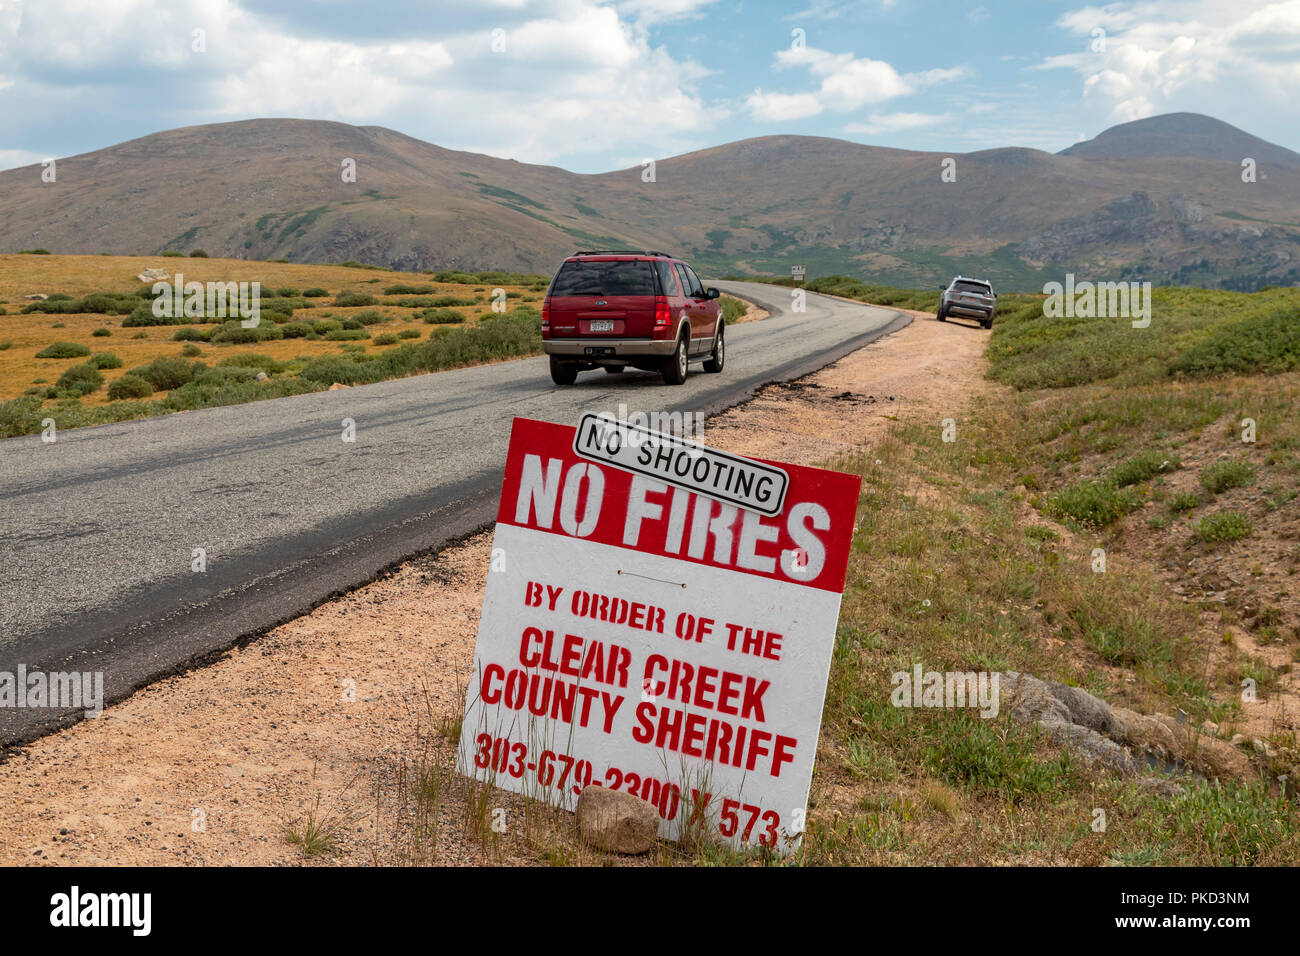 Georgetown, Colorado - A sign near Guanella Pass in the Rocky Mountains prohibits fires and shooting due to drought conditions. - Stock Image